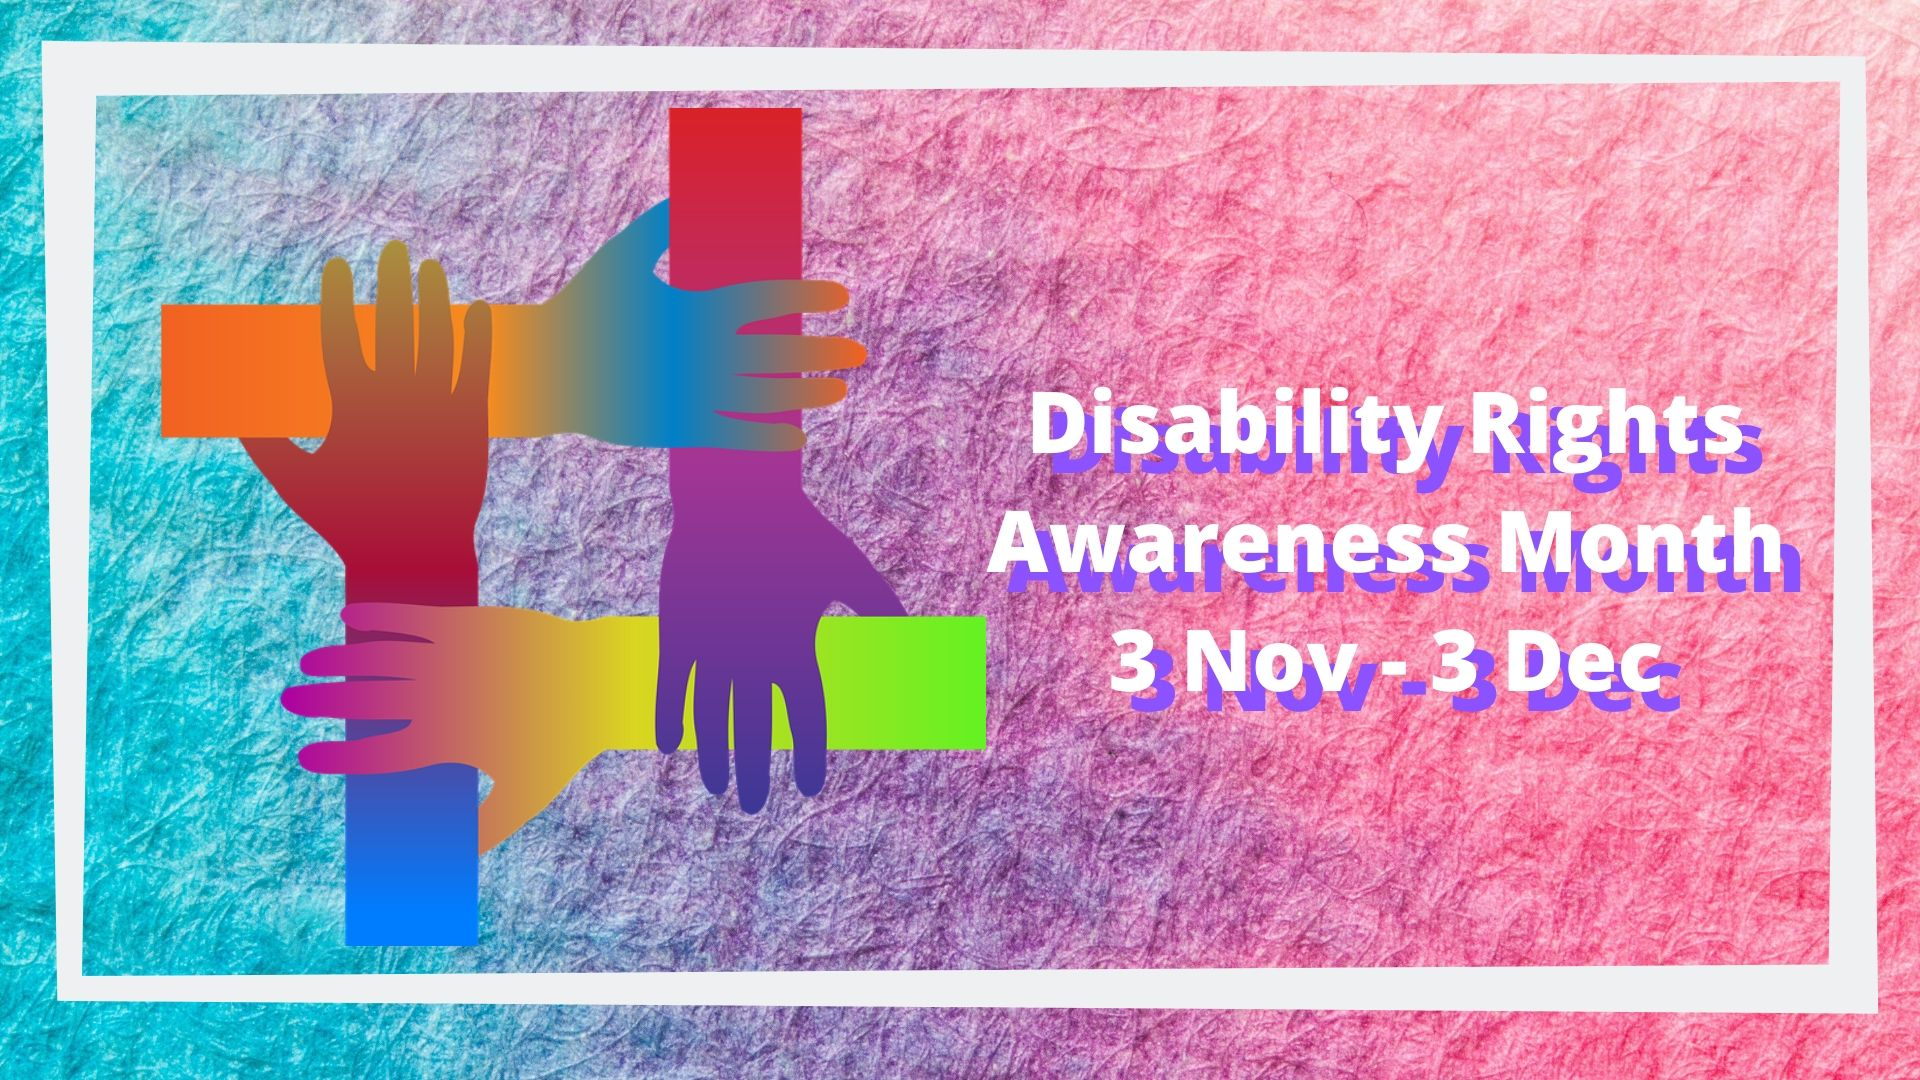 Disability Rights Awareness Month 2019